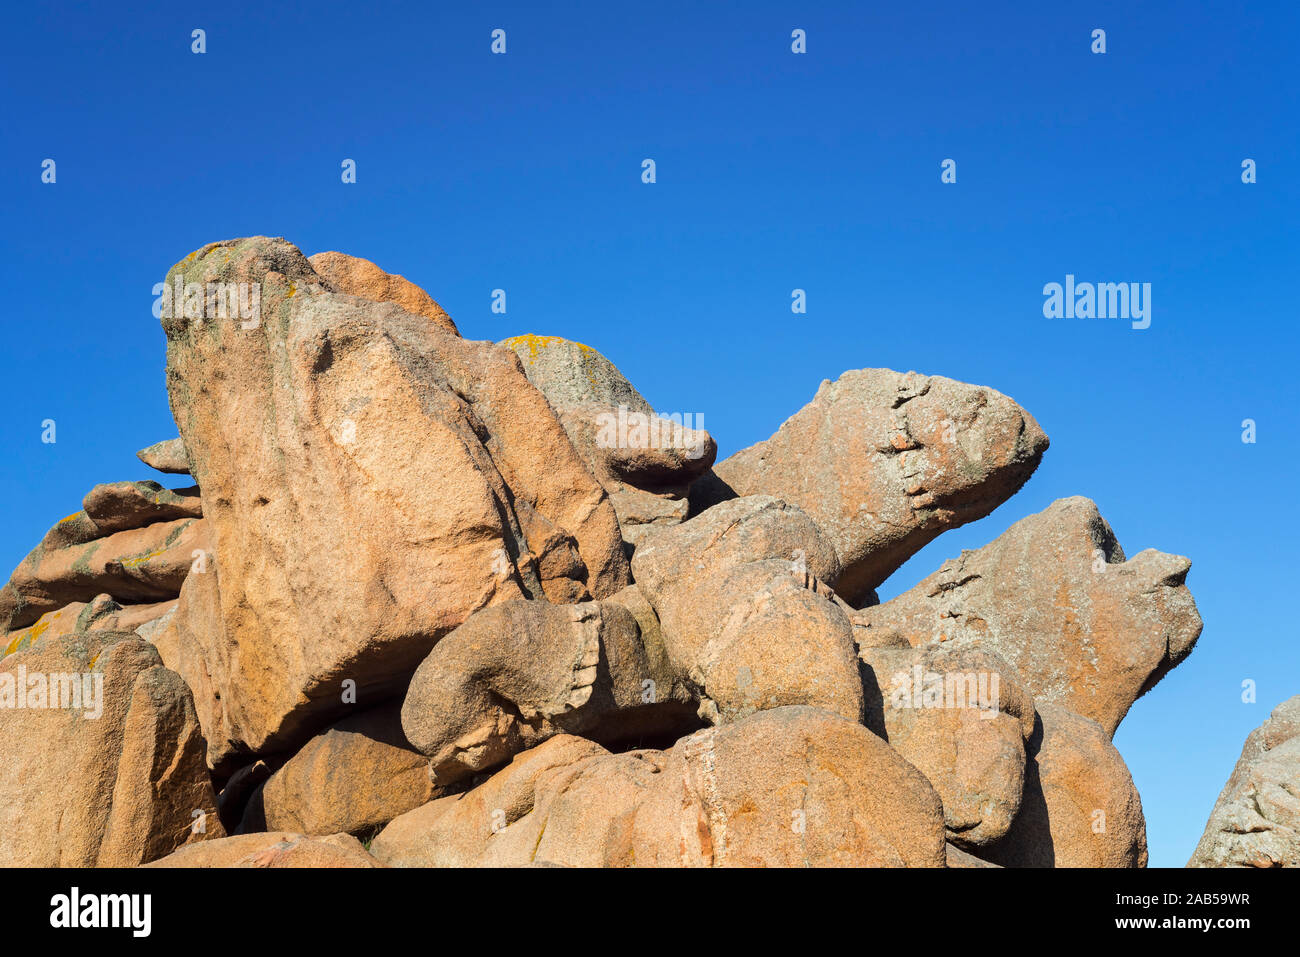 Strange rock formations and water / wind eroded boulders along the Côte de granit rose / Pink Granite Coast, Côtes d'Armor, Brittany, France Stock Photo